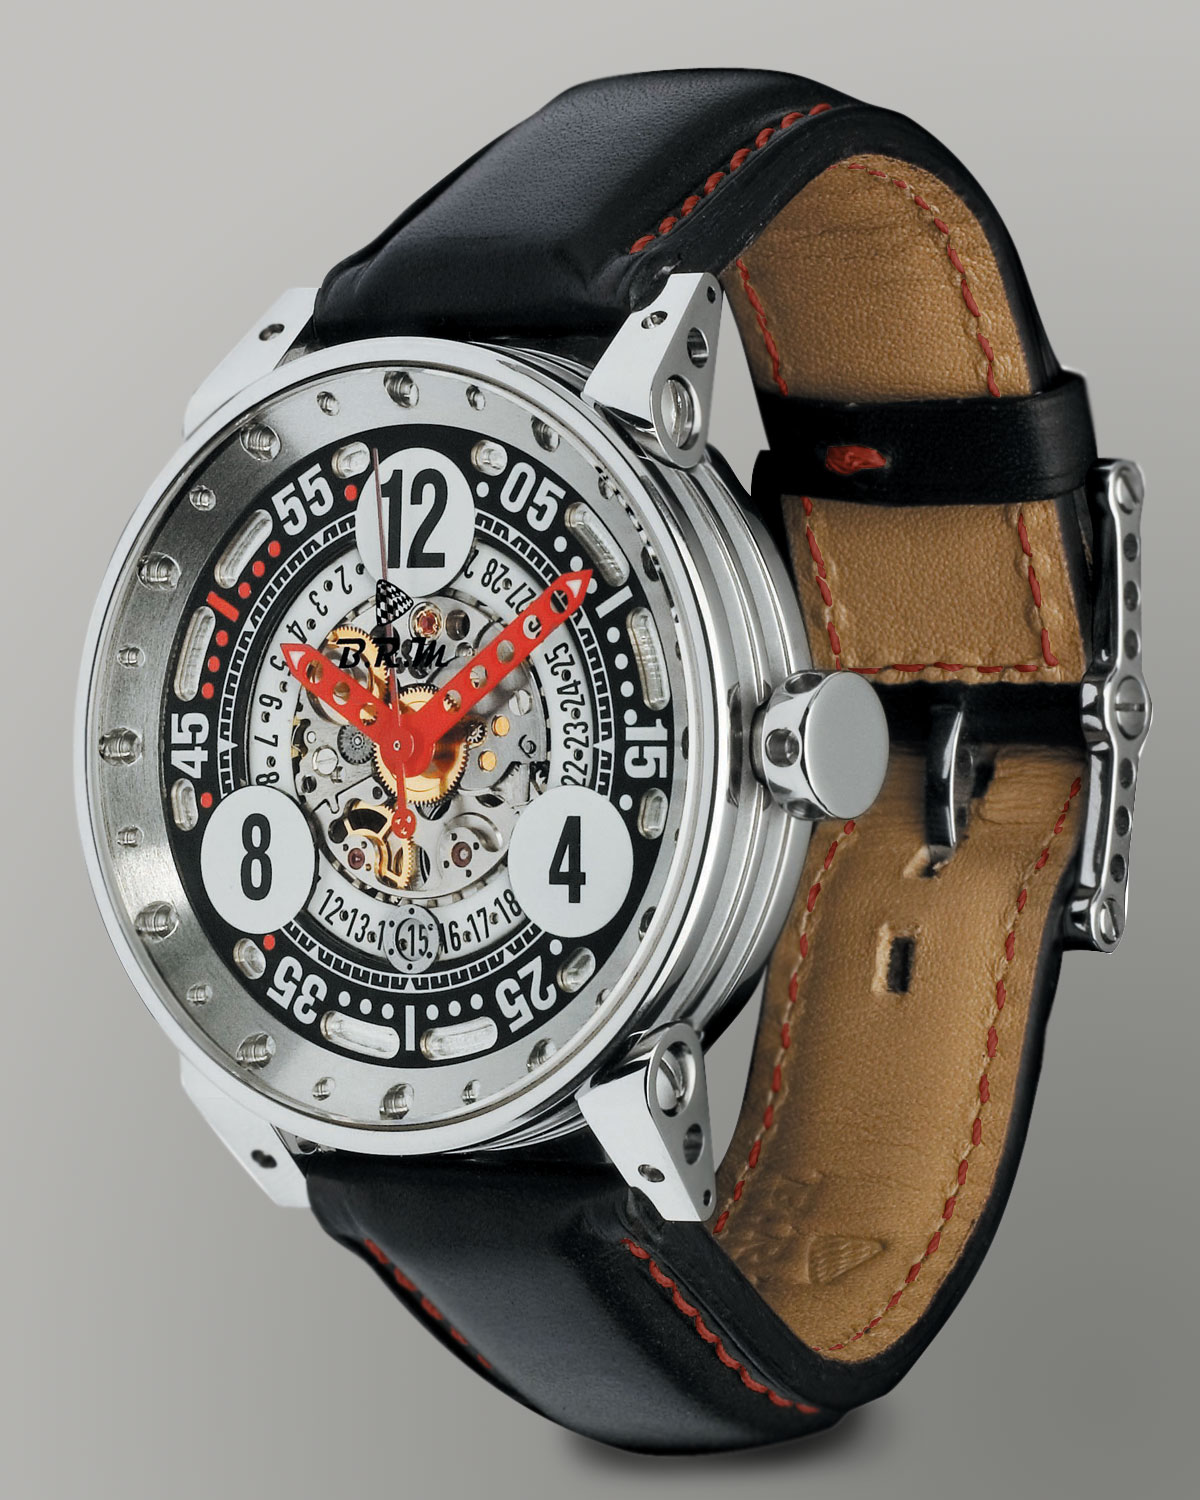 Name:  brm-v6-44-r-racing-skeleton-watch-product-1-2064107-760386691.jpeg